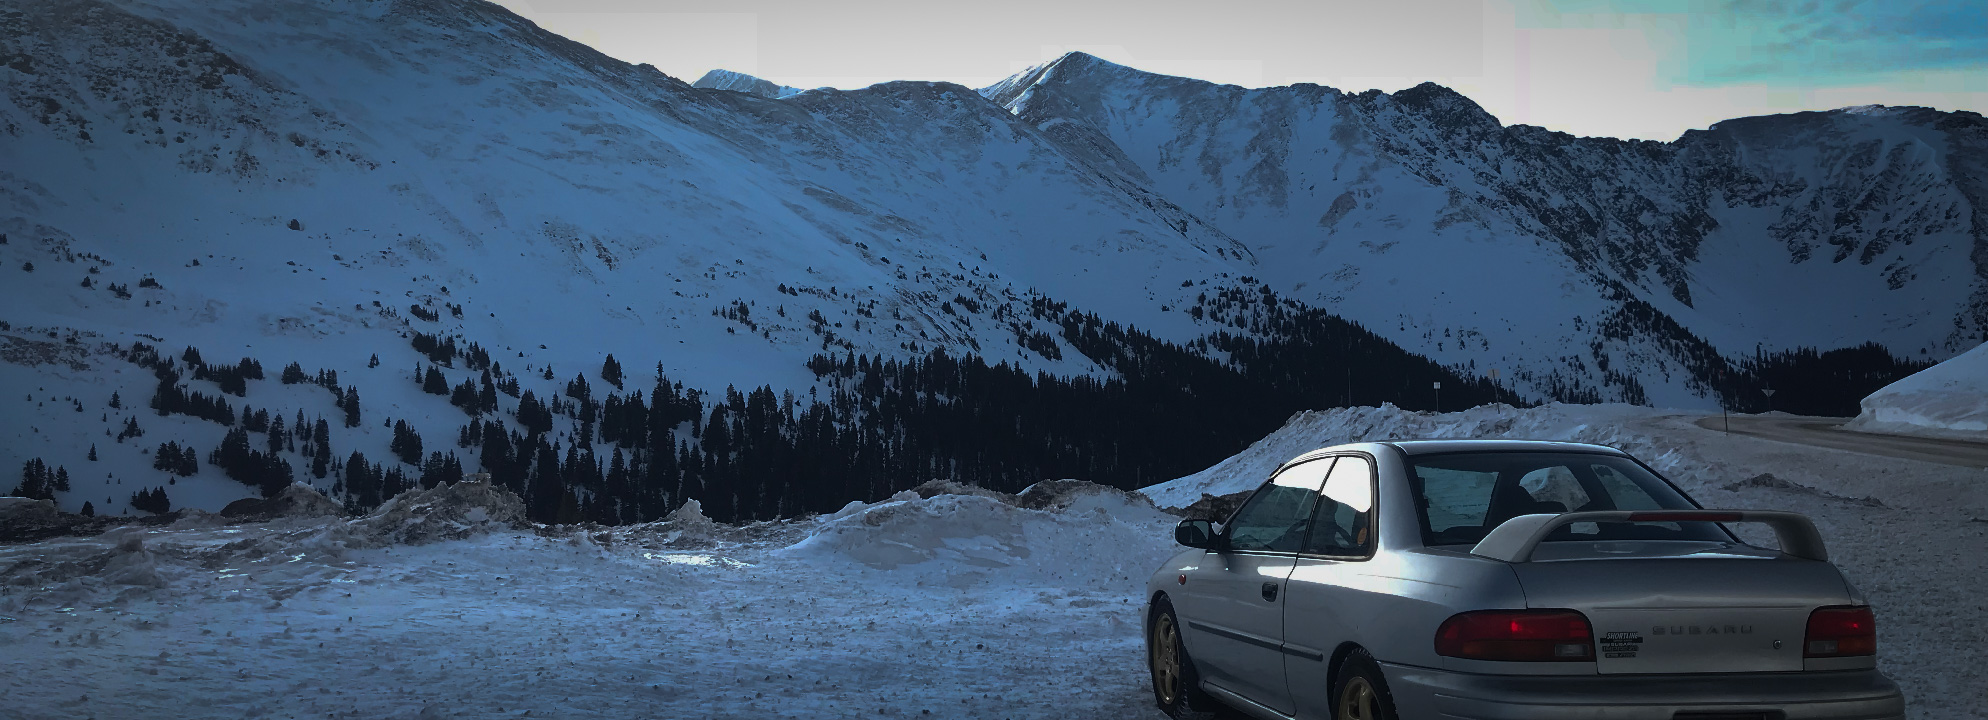 Subaru in the mountains